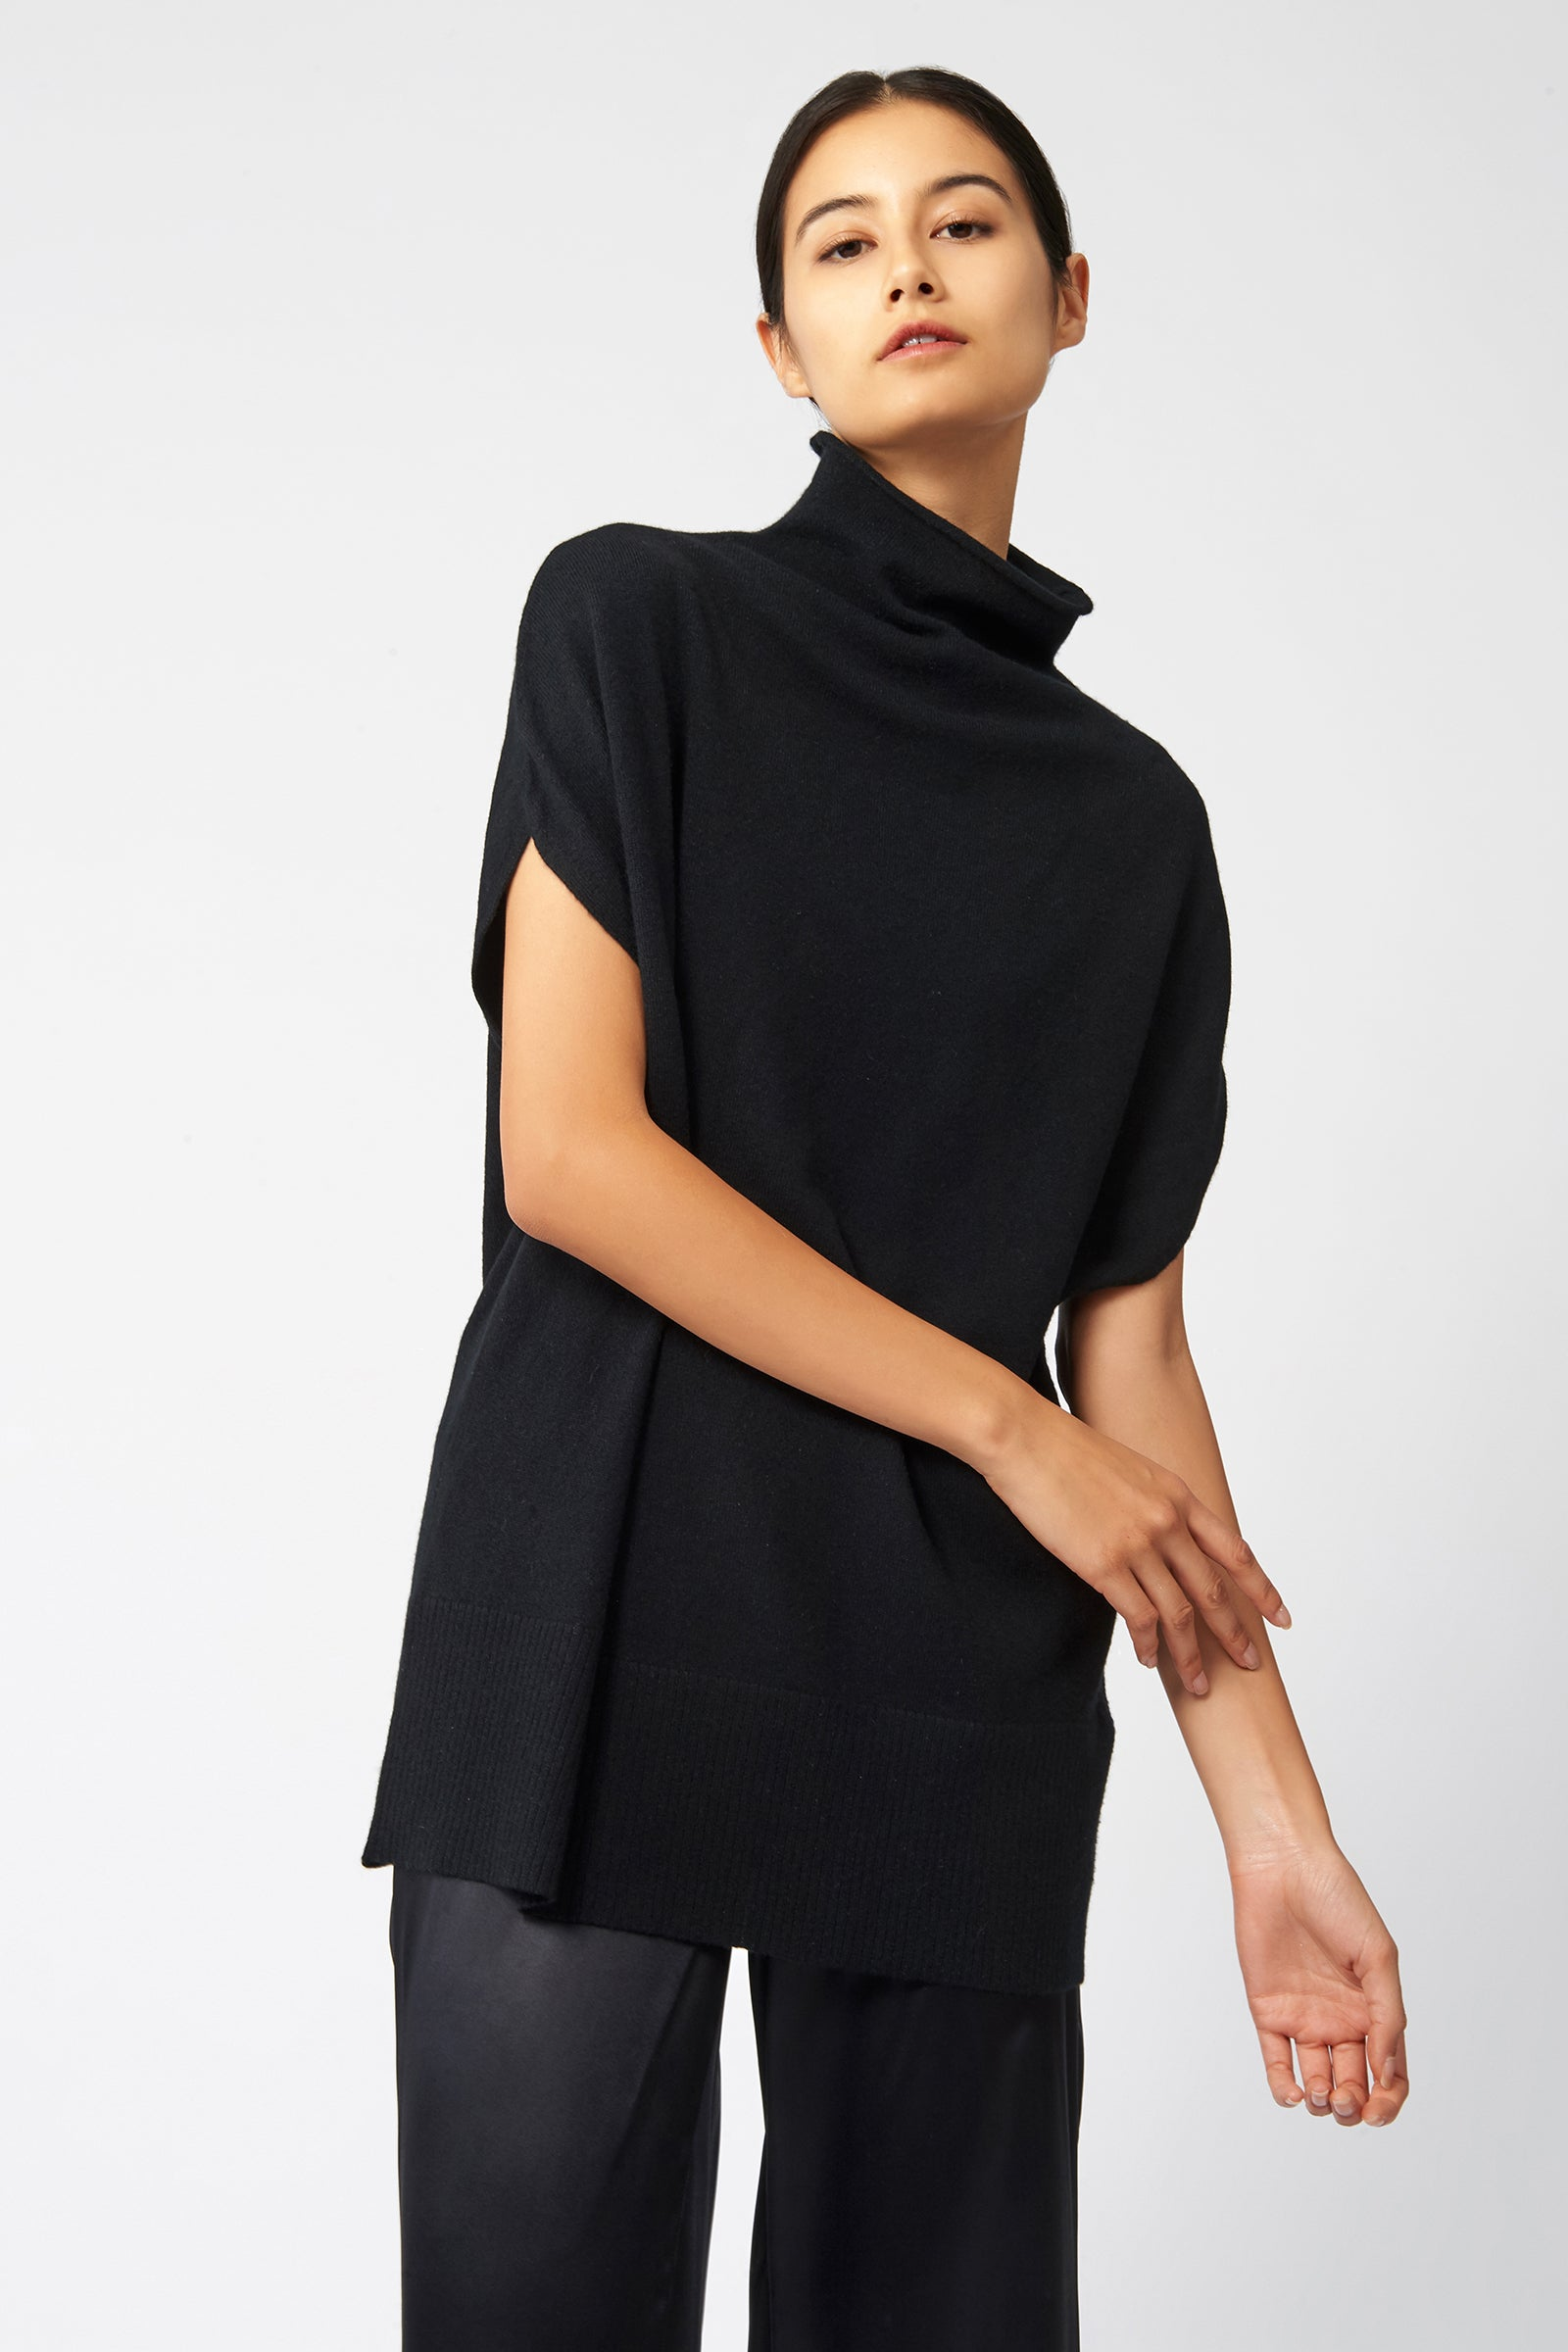 Kal Rieman Cashmere Funnelneck in Black on Model Front View